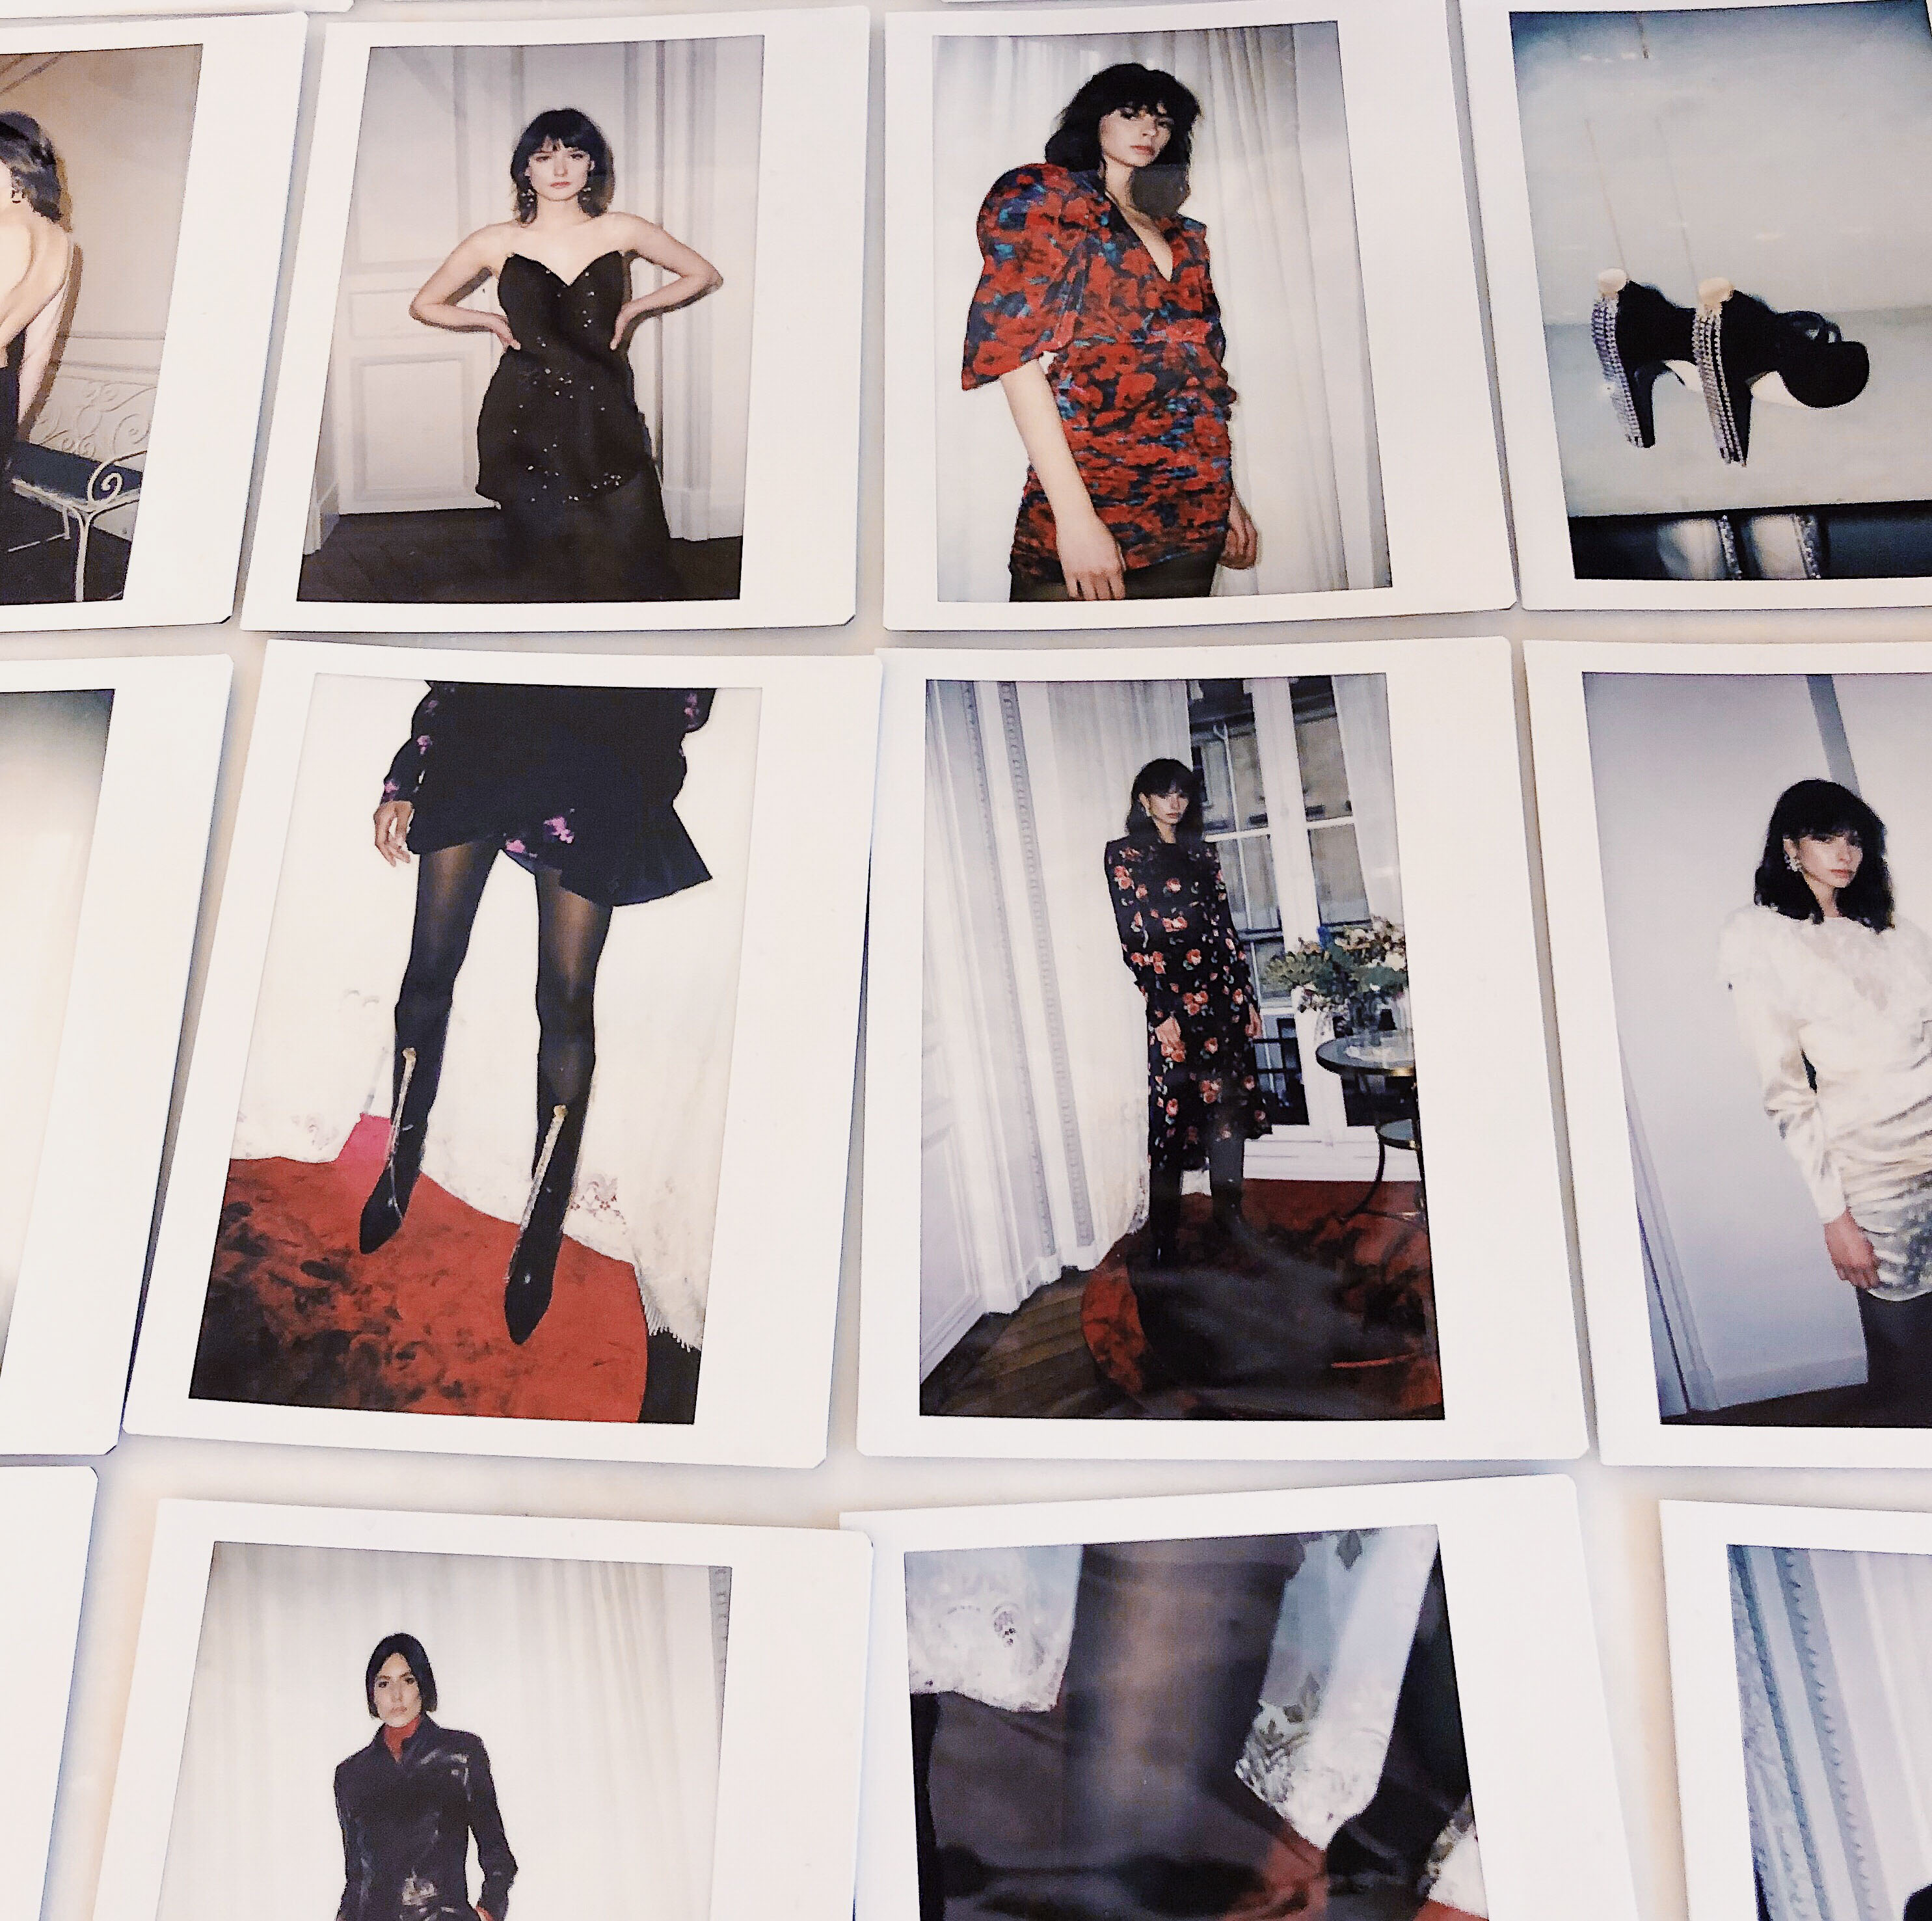 Paris Fashion Week Crush: The Polish Brand Magda Butrym. Review of Magda Butrym Presentation of the Ready To Wear Fall Winter 2019 2020 Collection. Polaroids taken during the presentation.